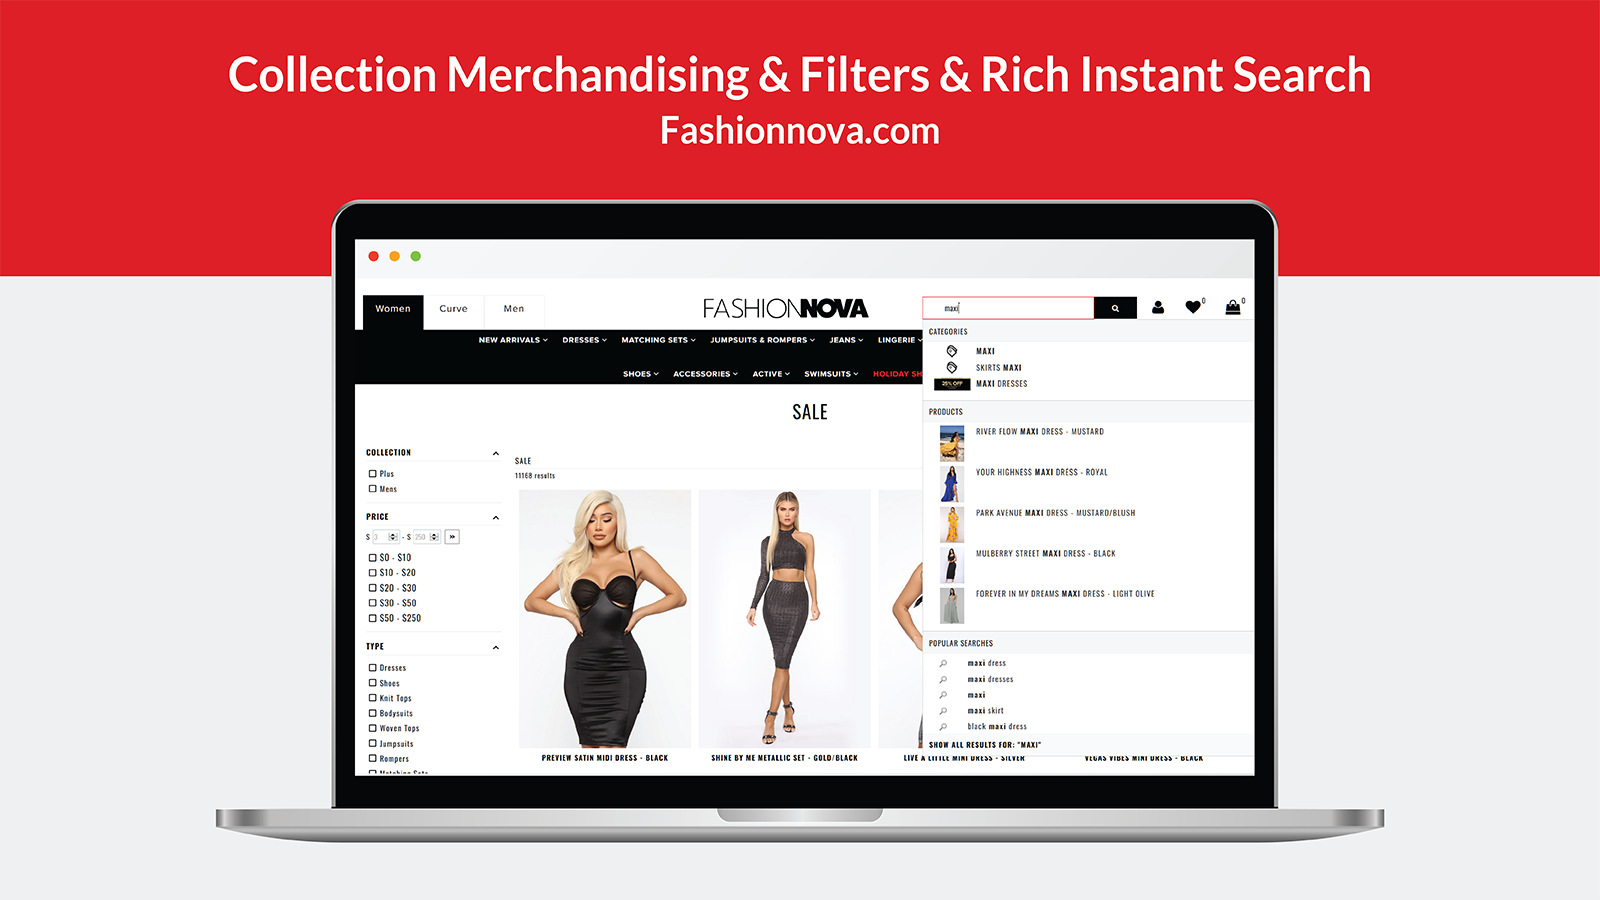 Collection Merchandising & Filter menu & Rich Instant Search